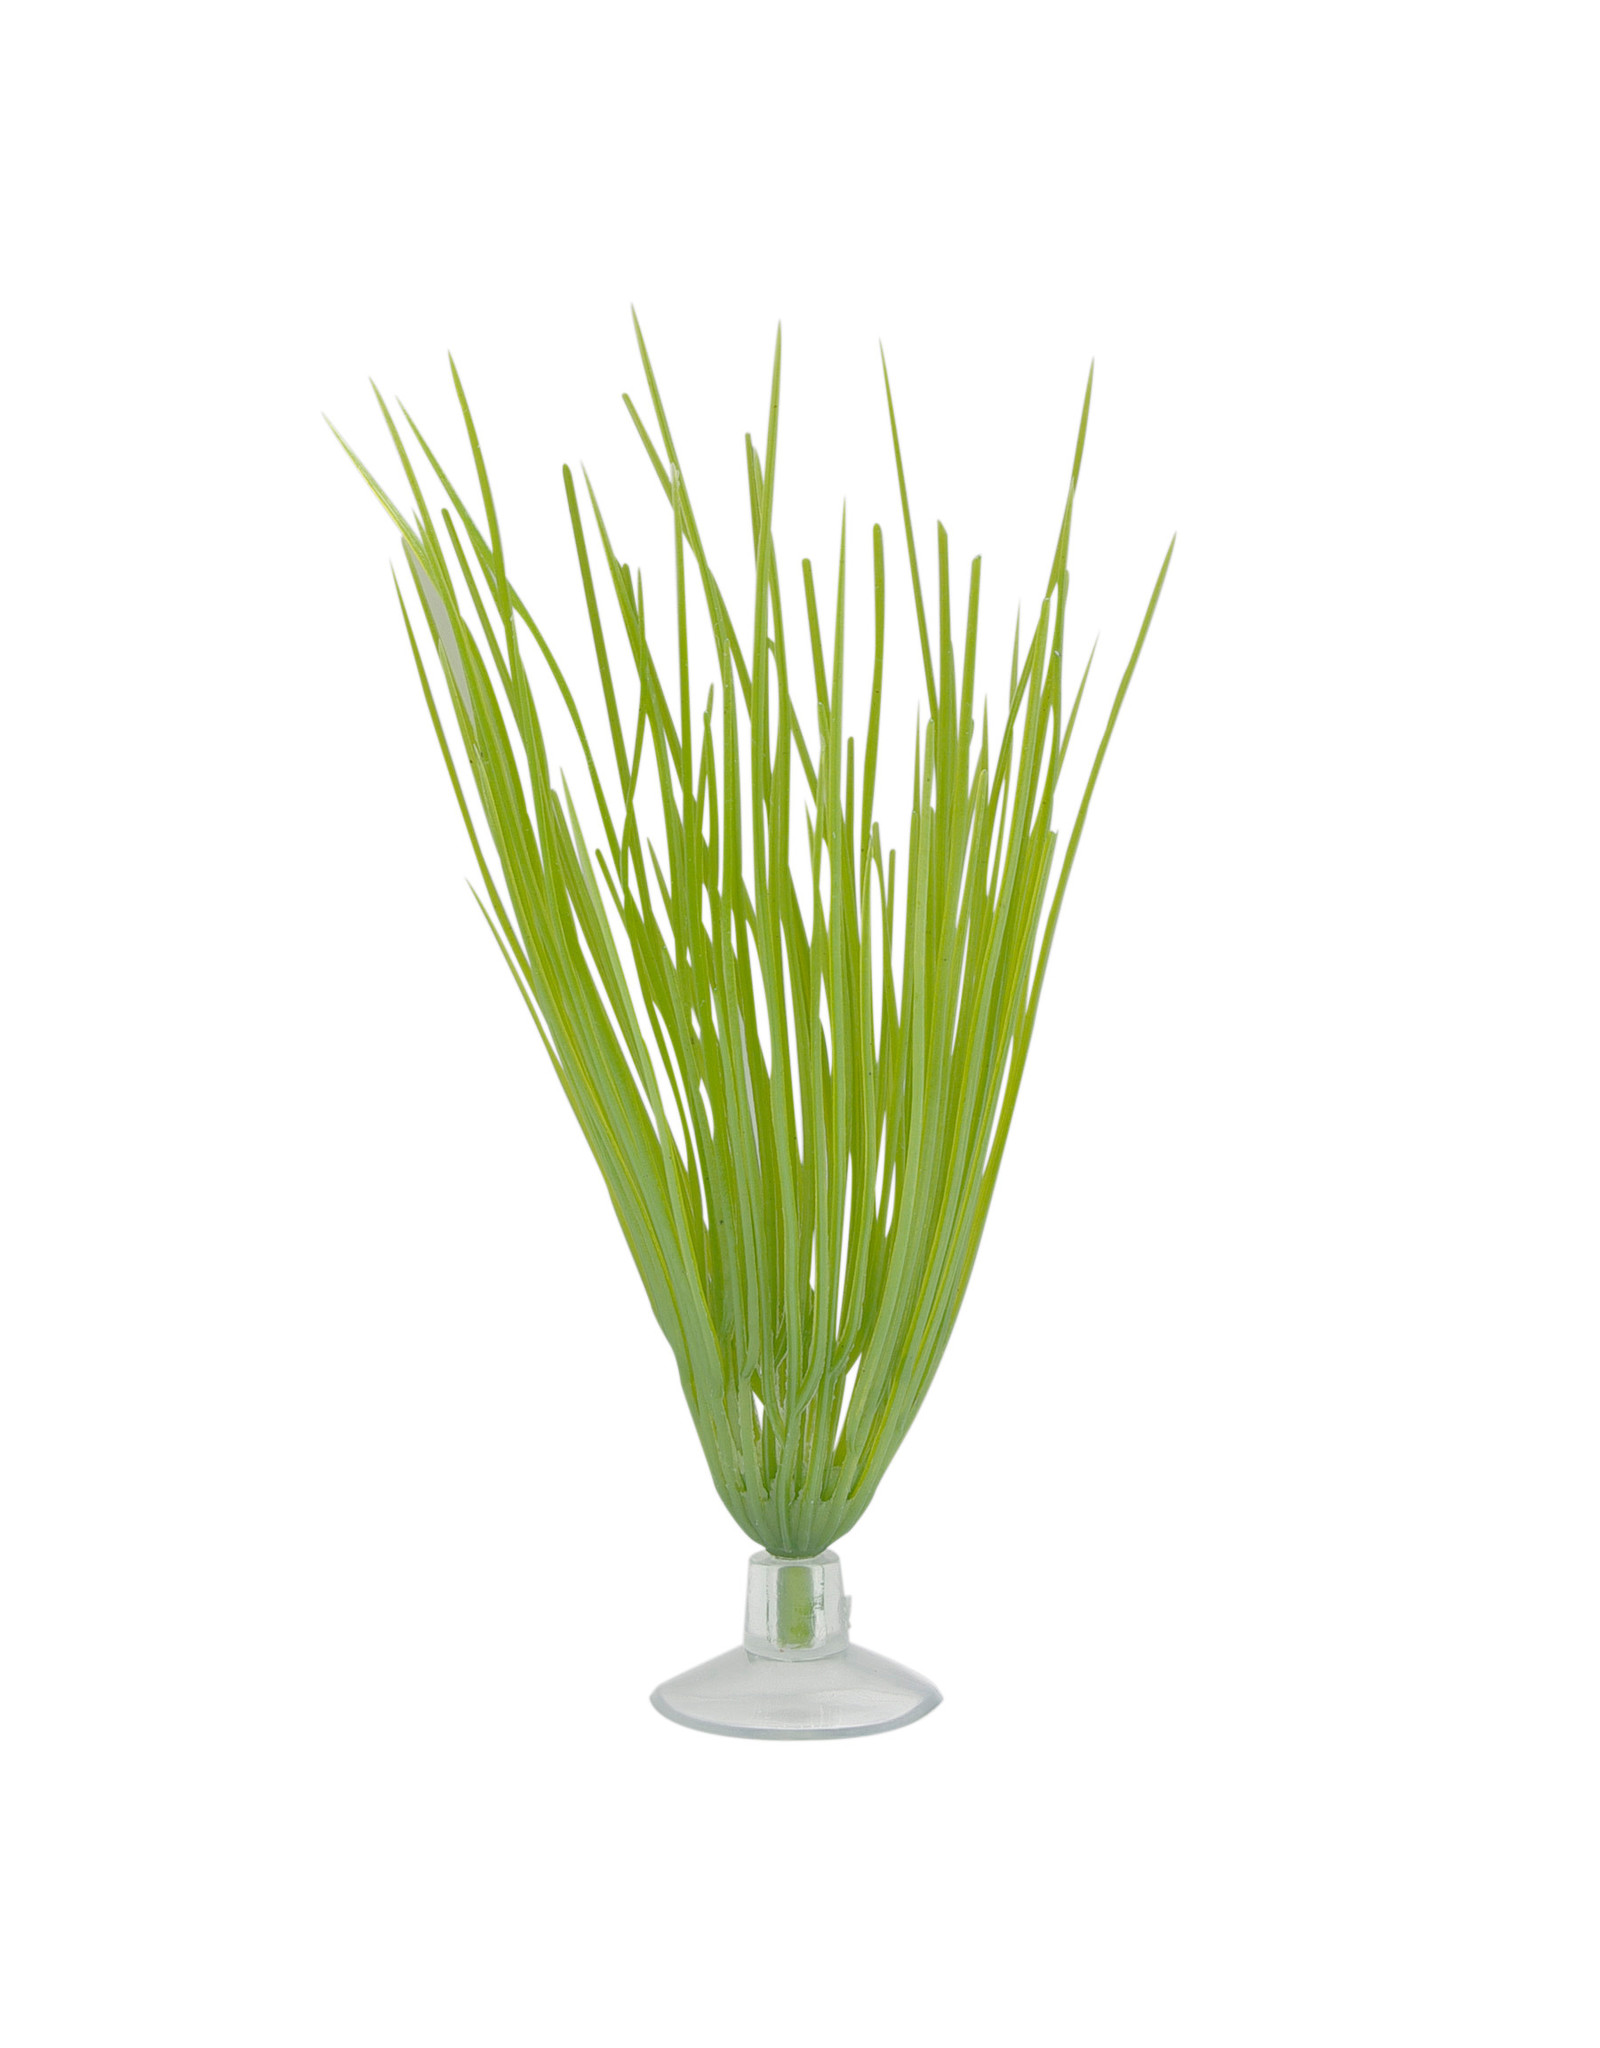 "Marina Marina Betta Hairgrass Plant With Suction Cup - 12.7 cm (5"")"